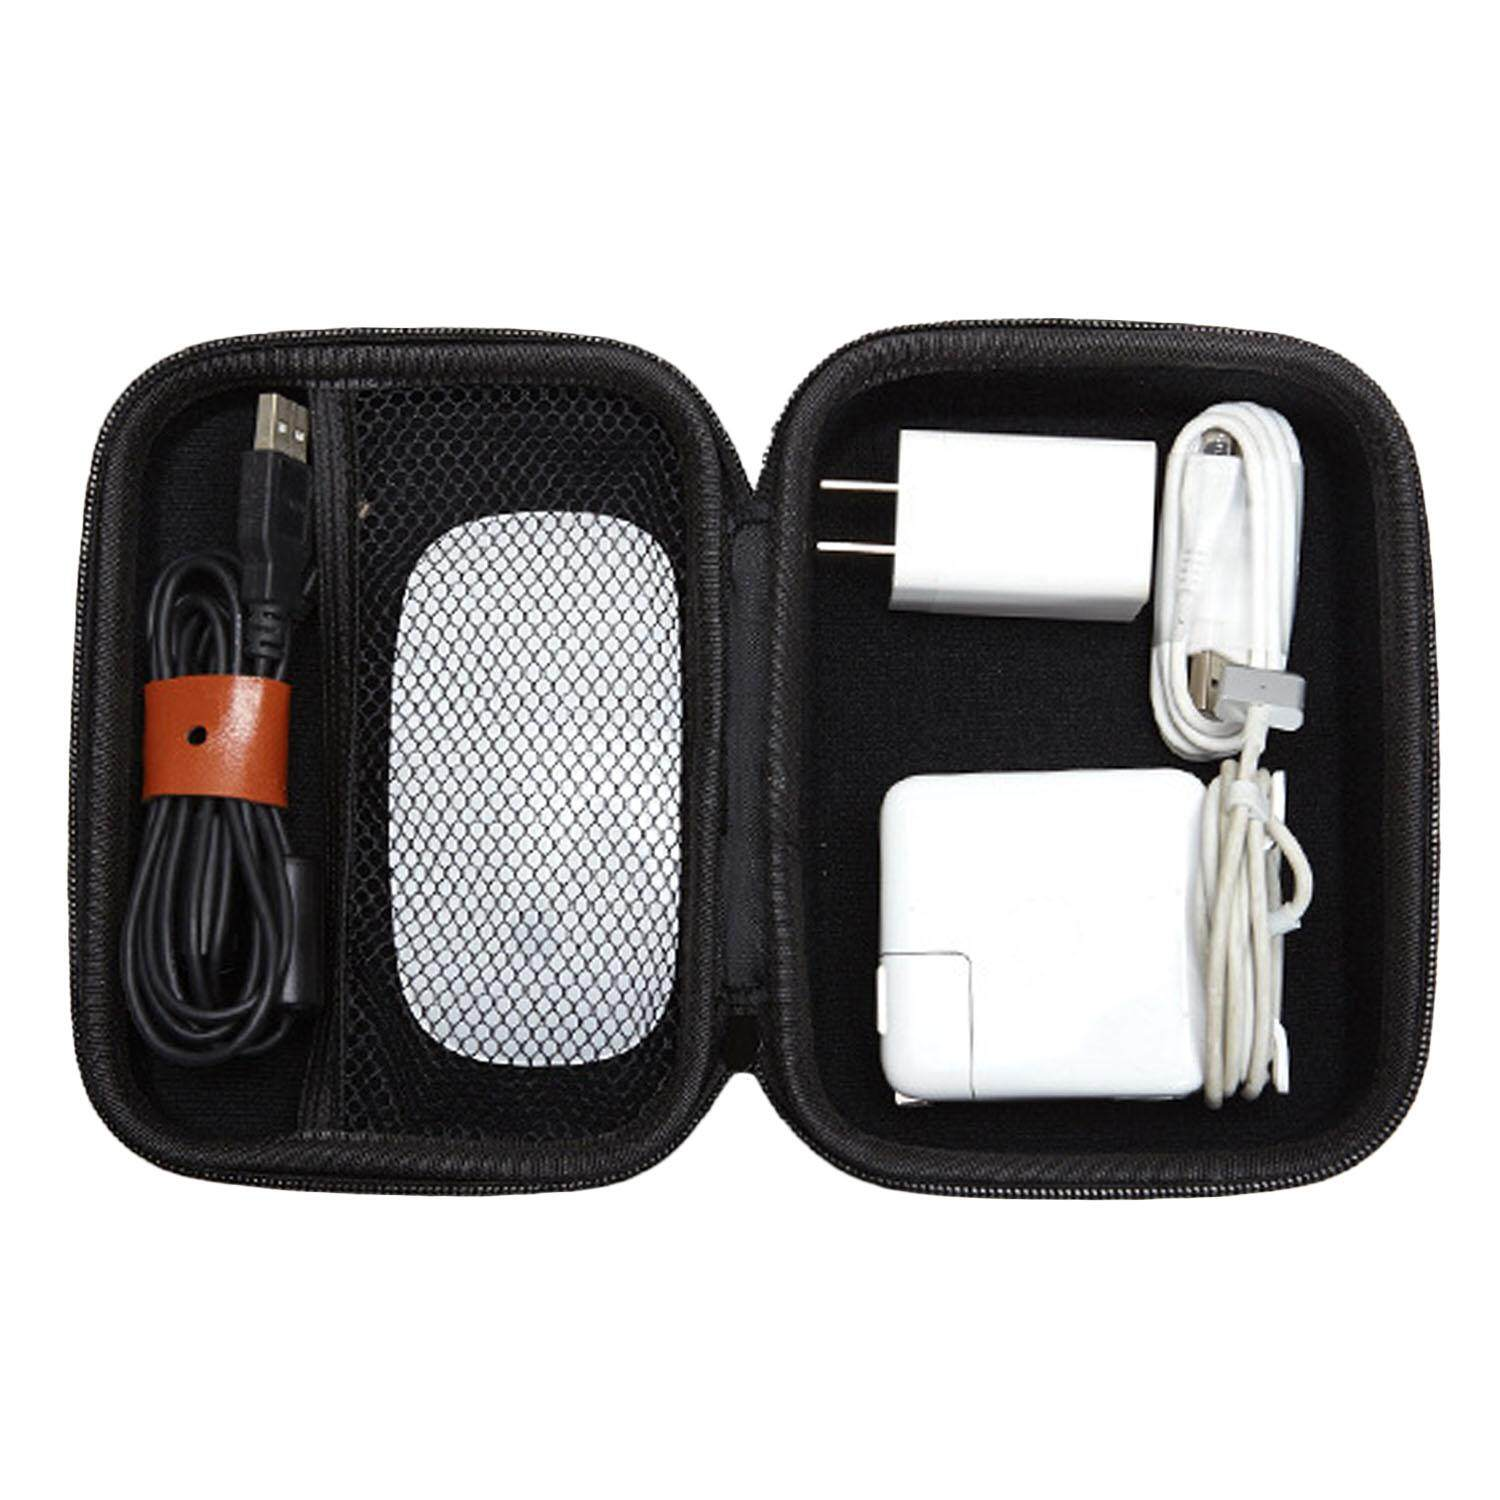 Hard Eva Portable Travel Carrying Protective Storage Case Bag For Apple Laptop Power Adapter Mouse Accessories By Duha.